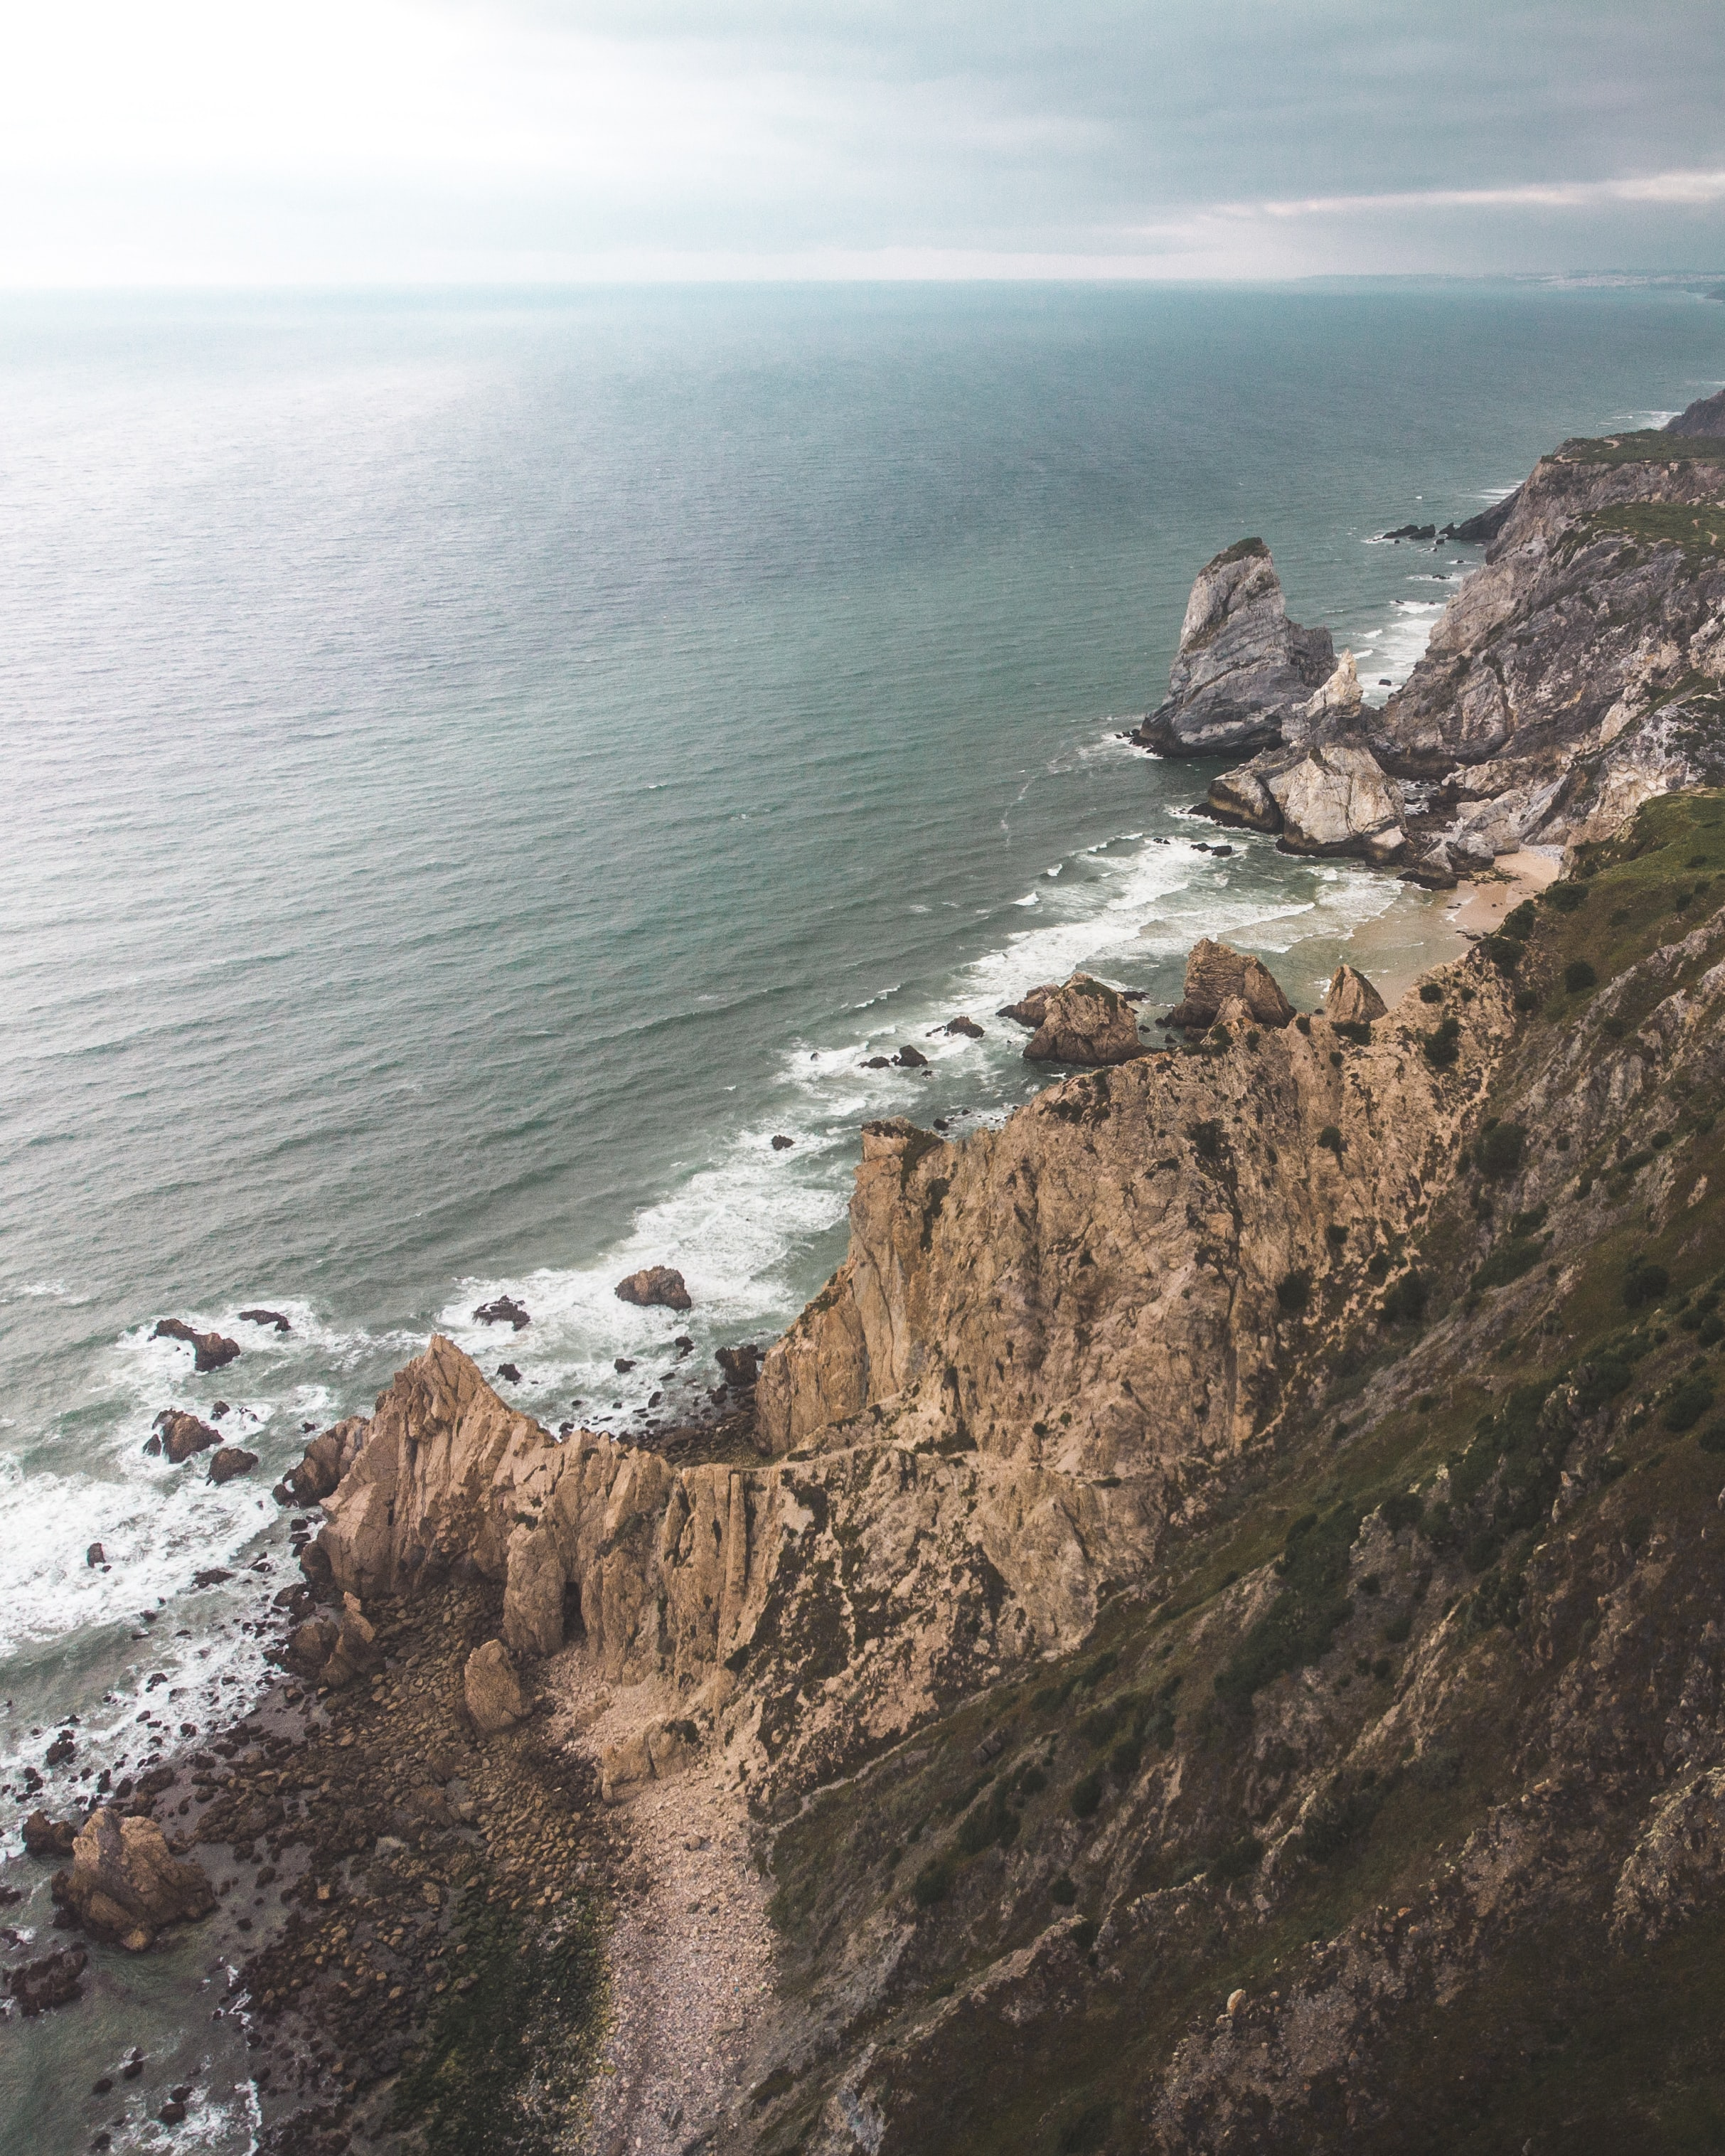 bird's-eye view photo of seashore and cliffs during daytime